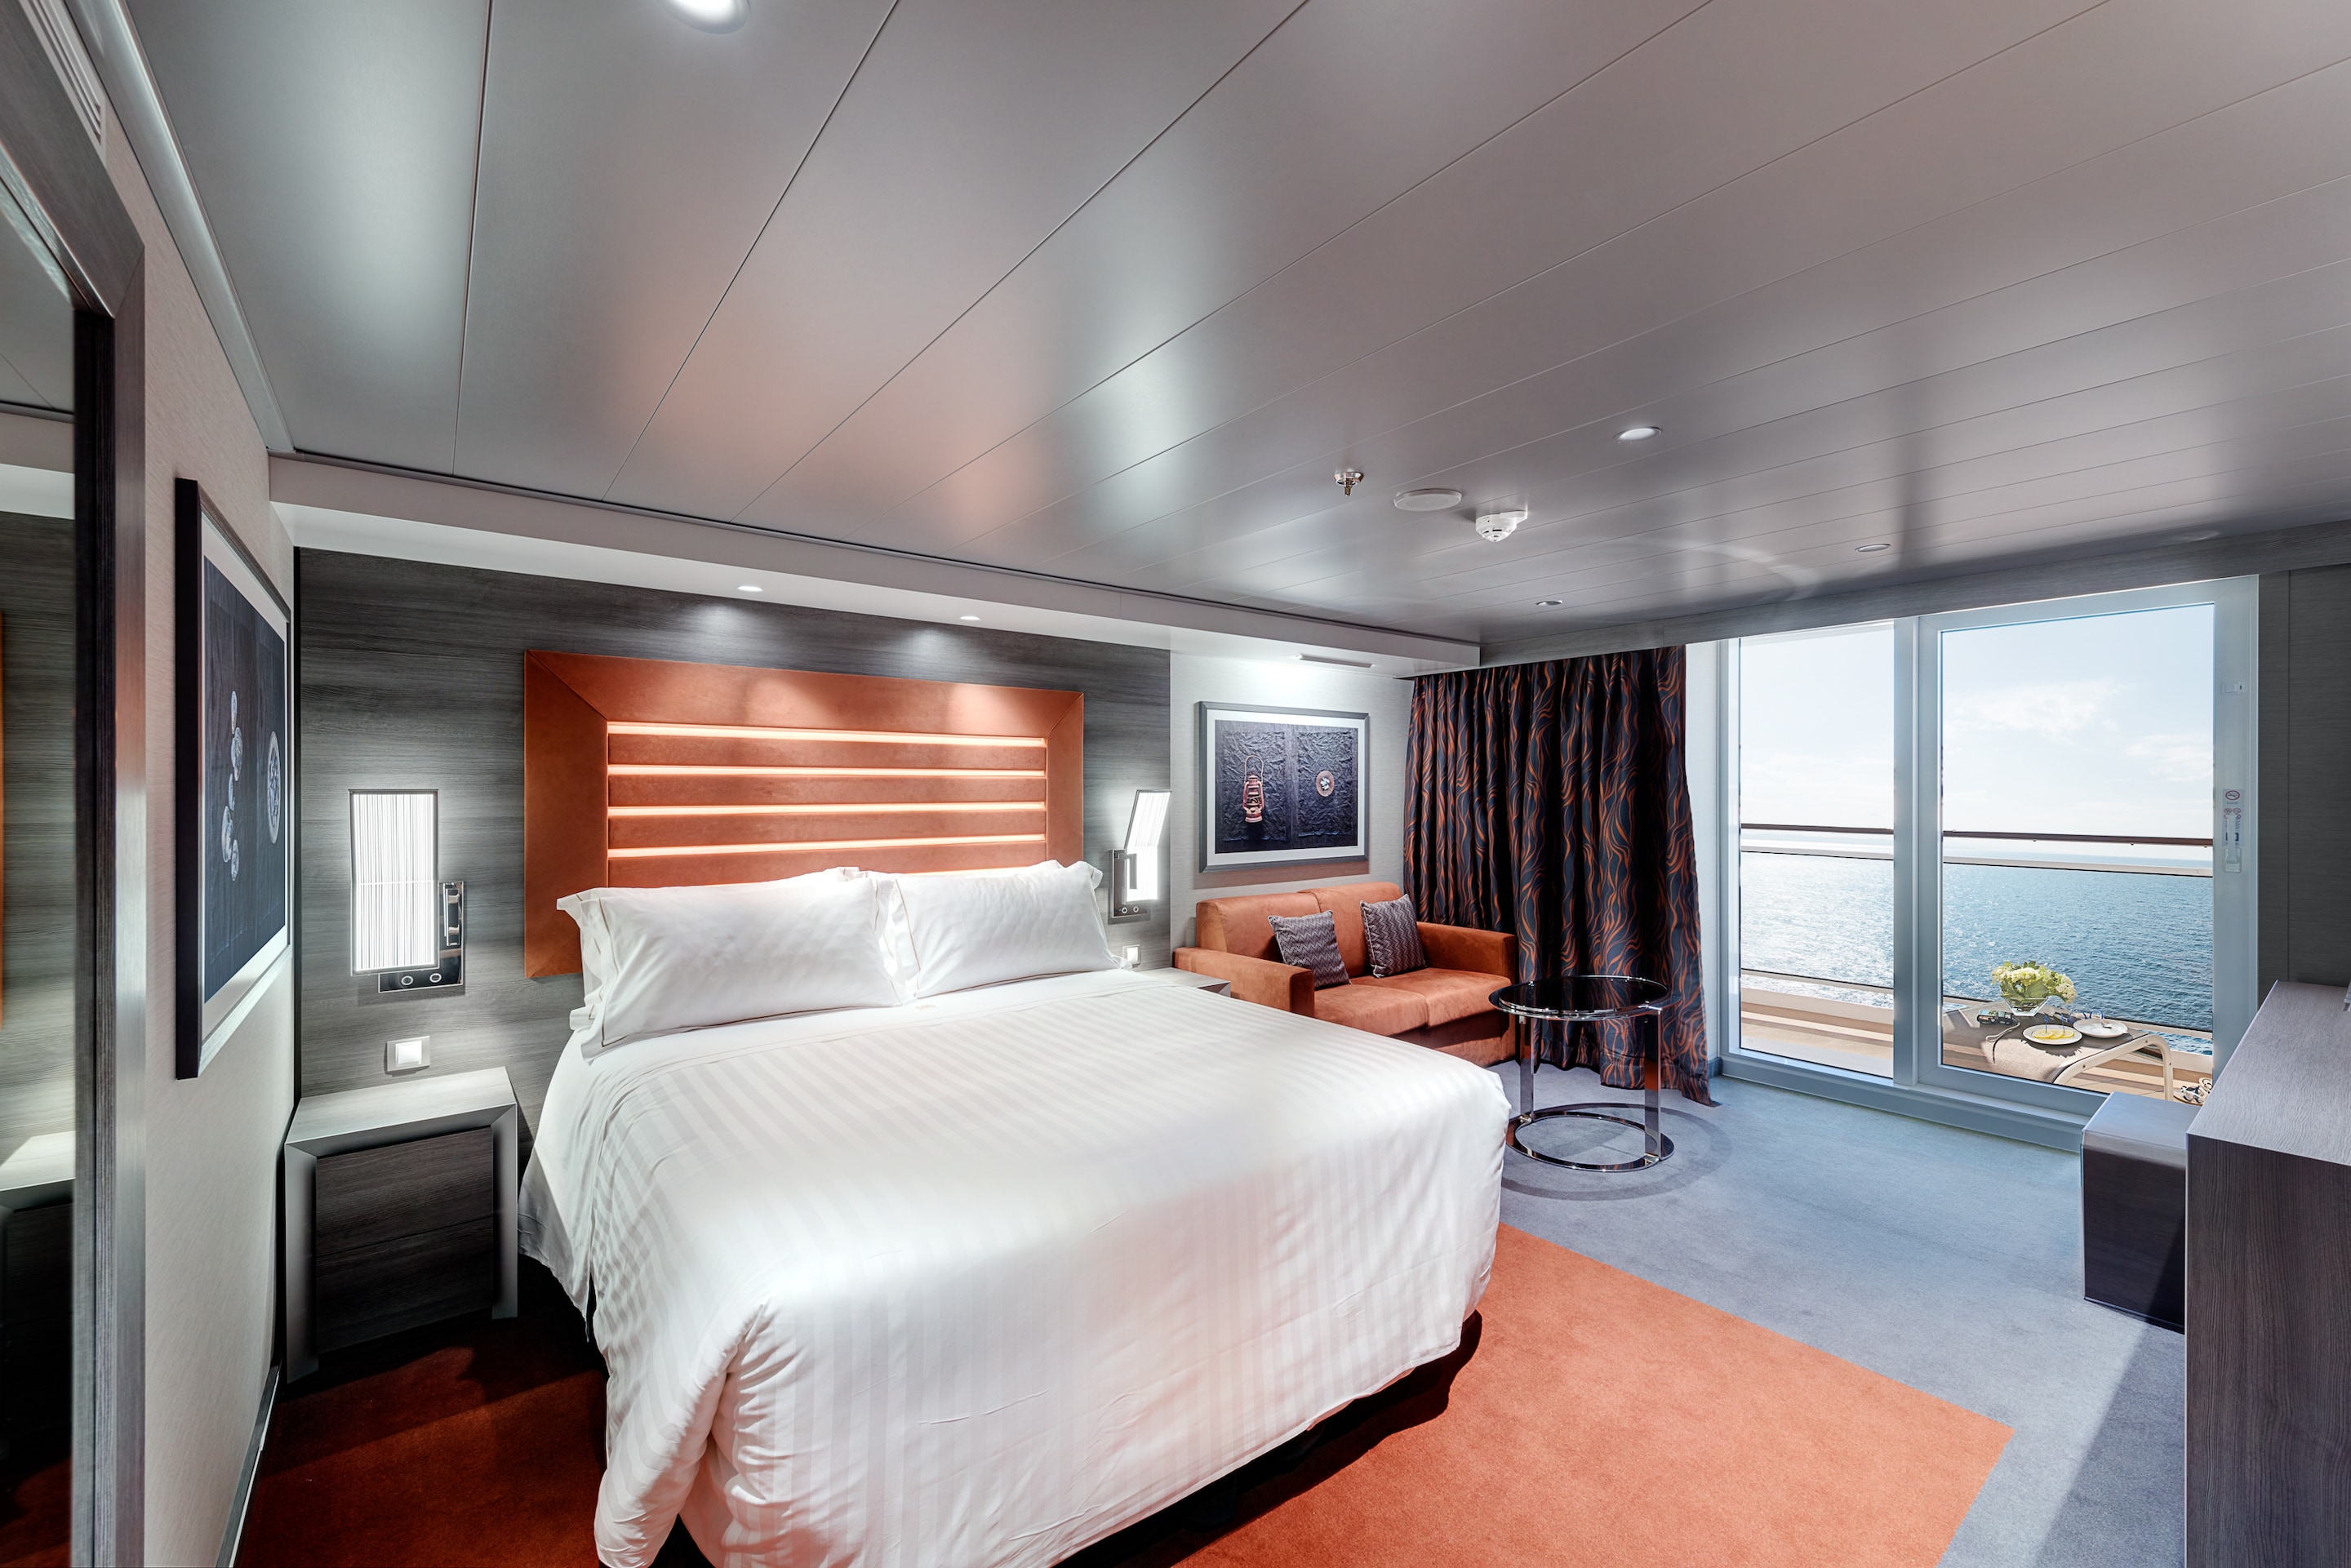 Msc Meraviglia 3 Inside Meraviglia The Worlds Newest Most Luxurious Cruise Ship Travel